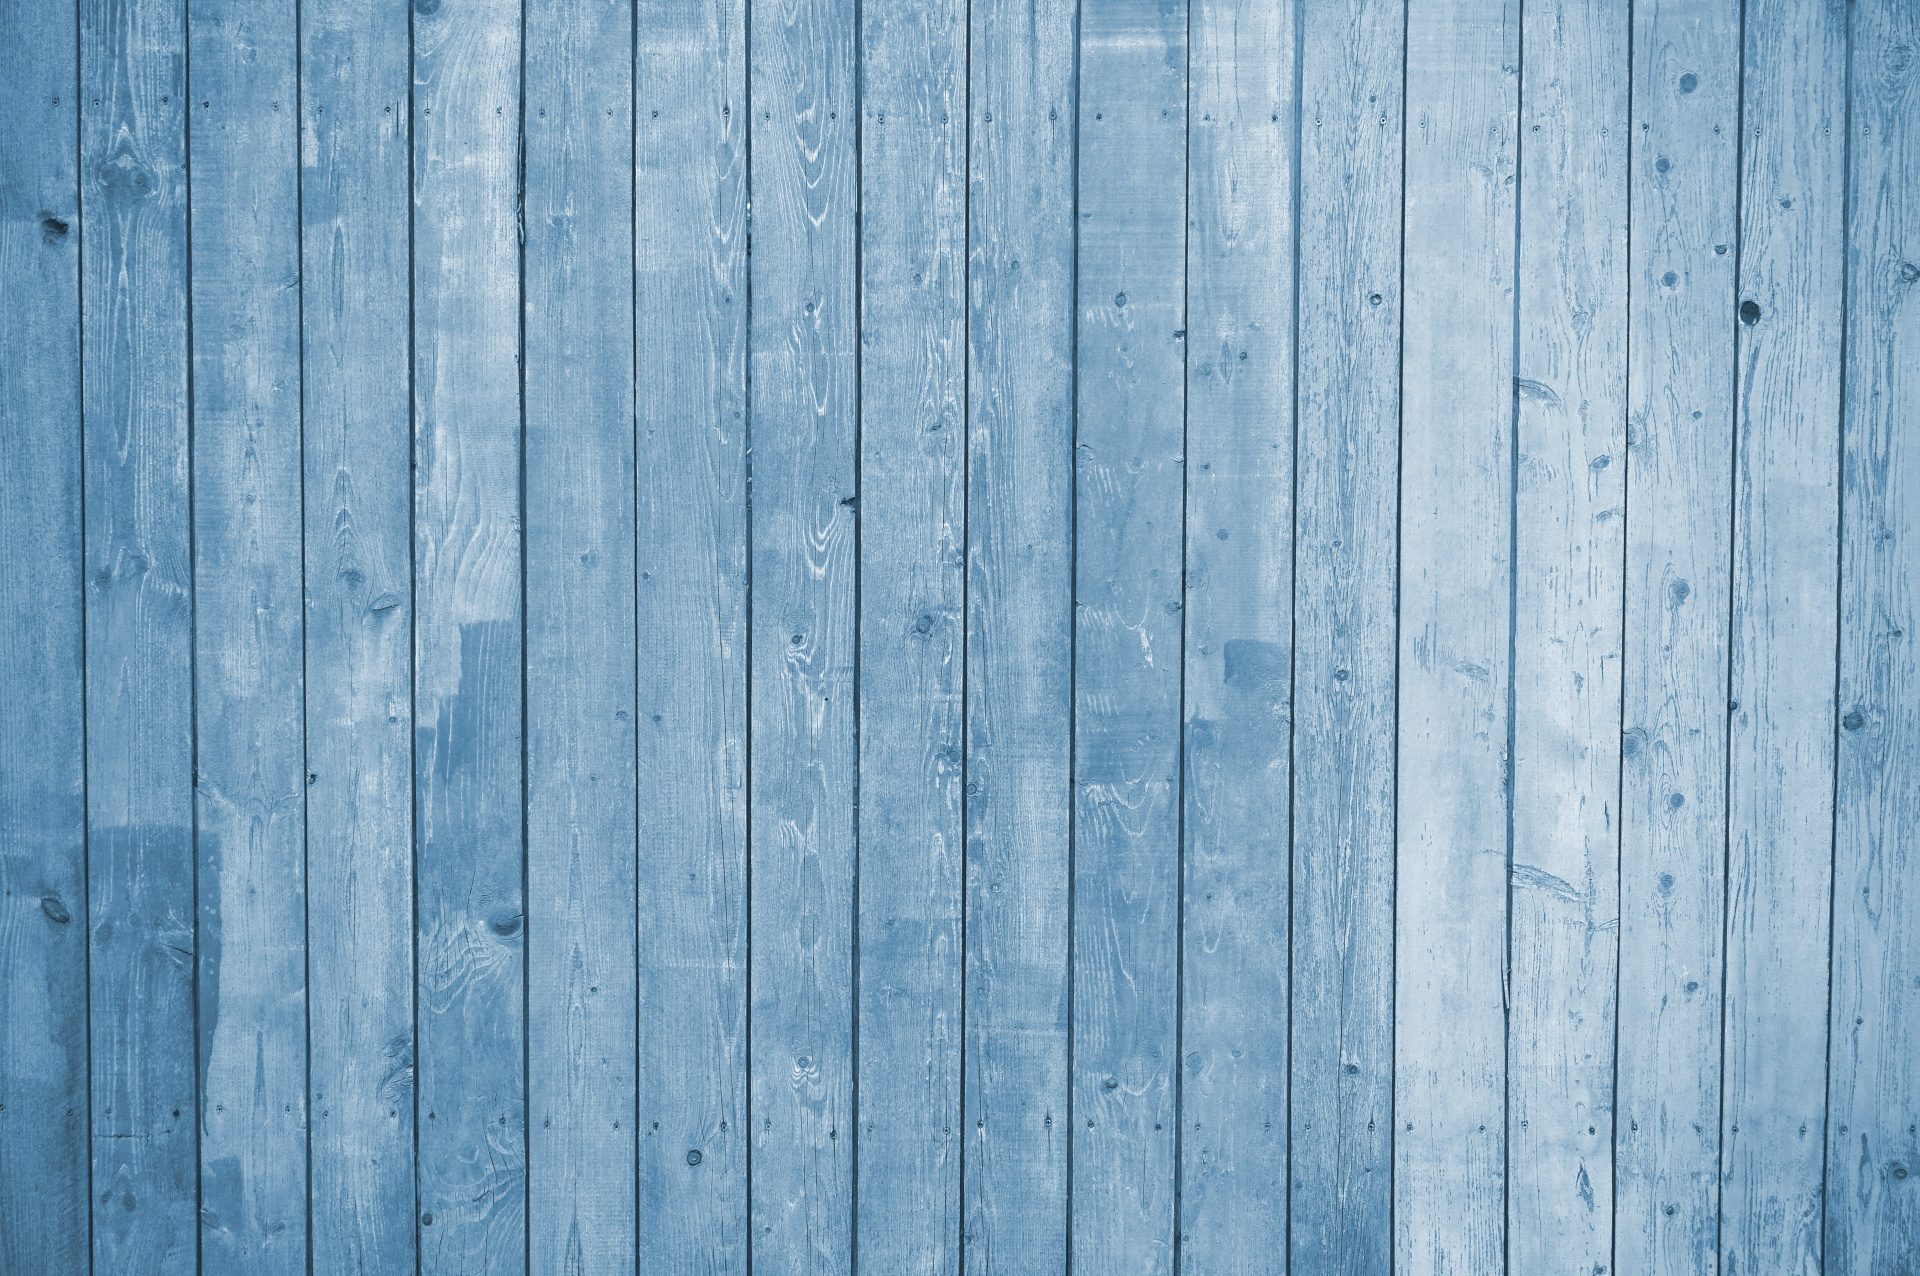 Fence Fencing Wood Wooden Panels Free Image From Needpix Com